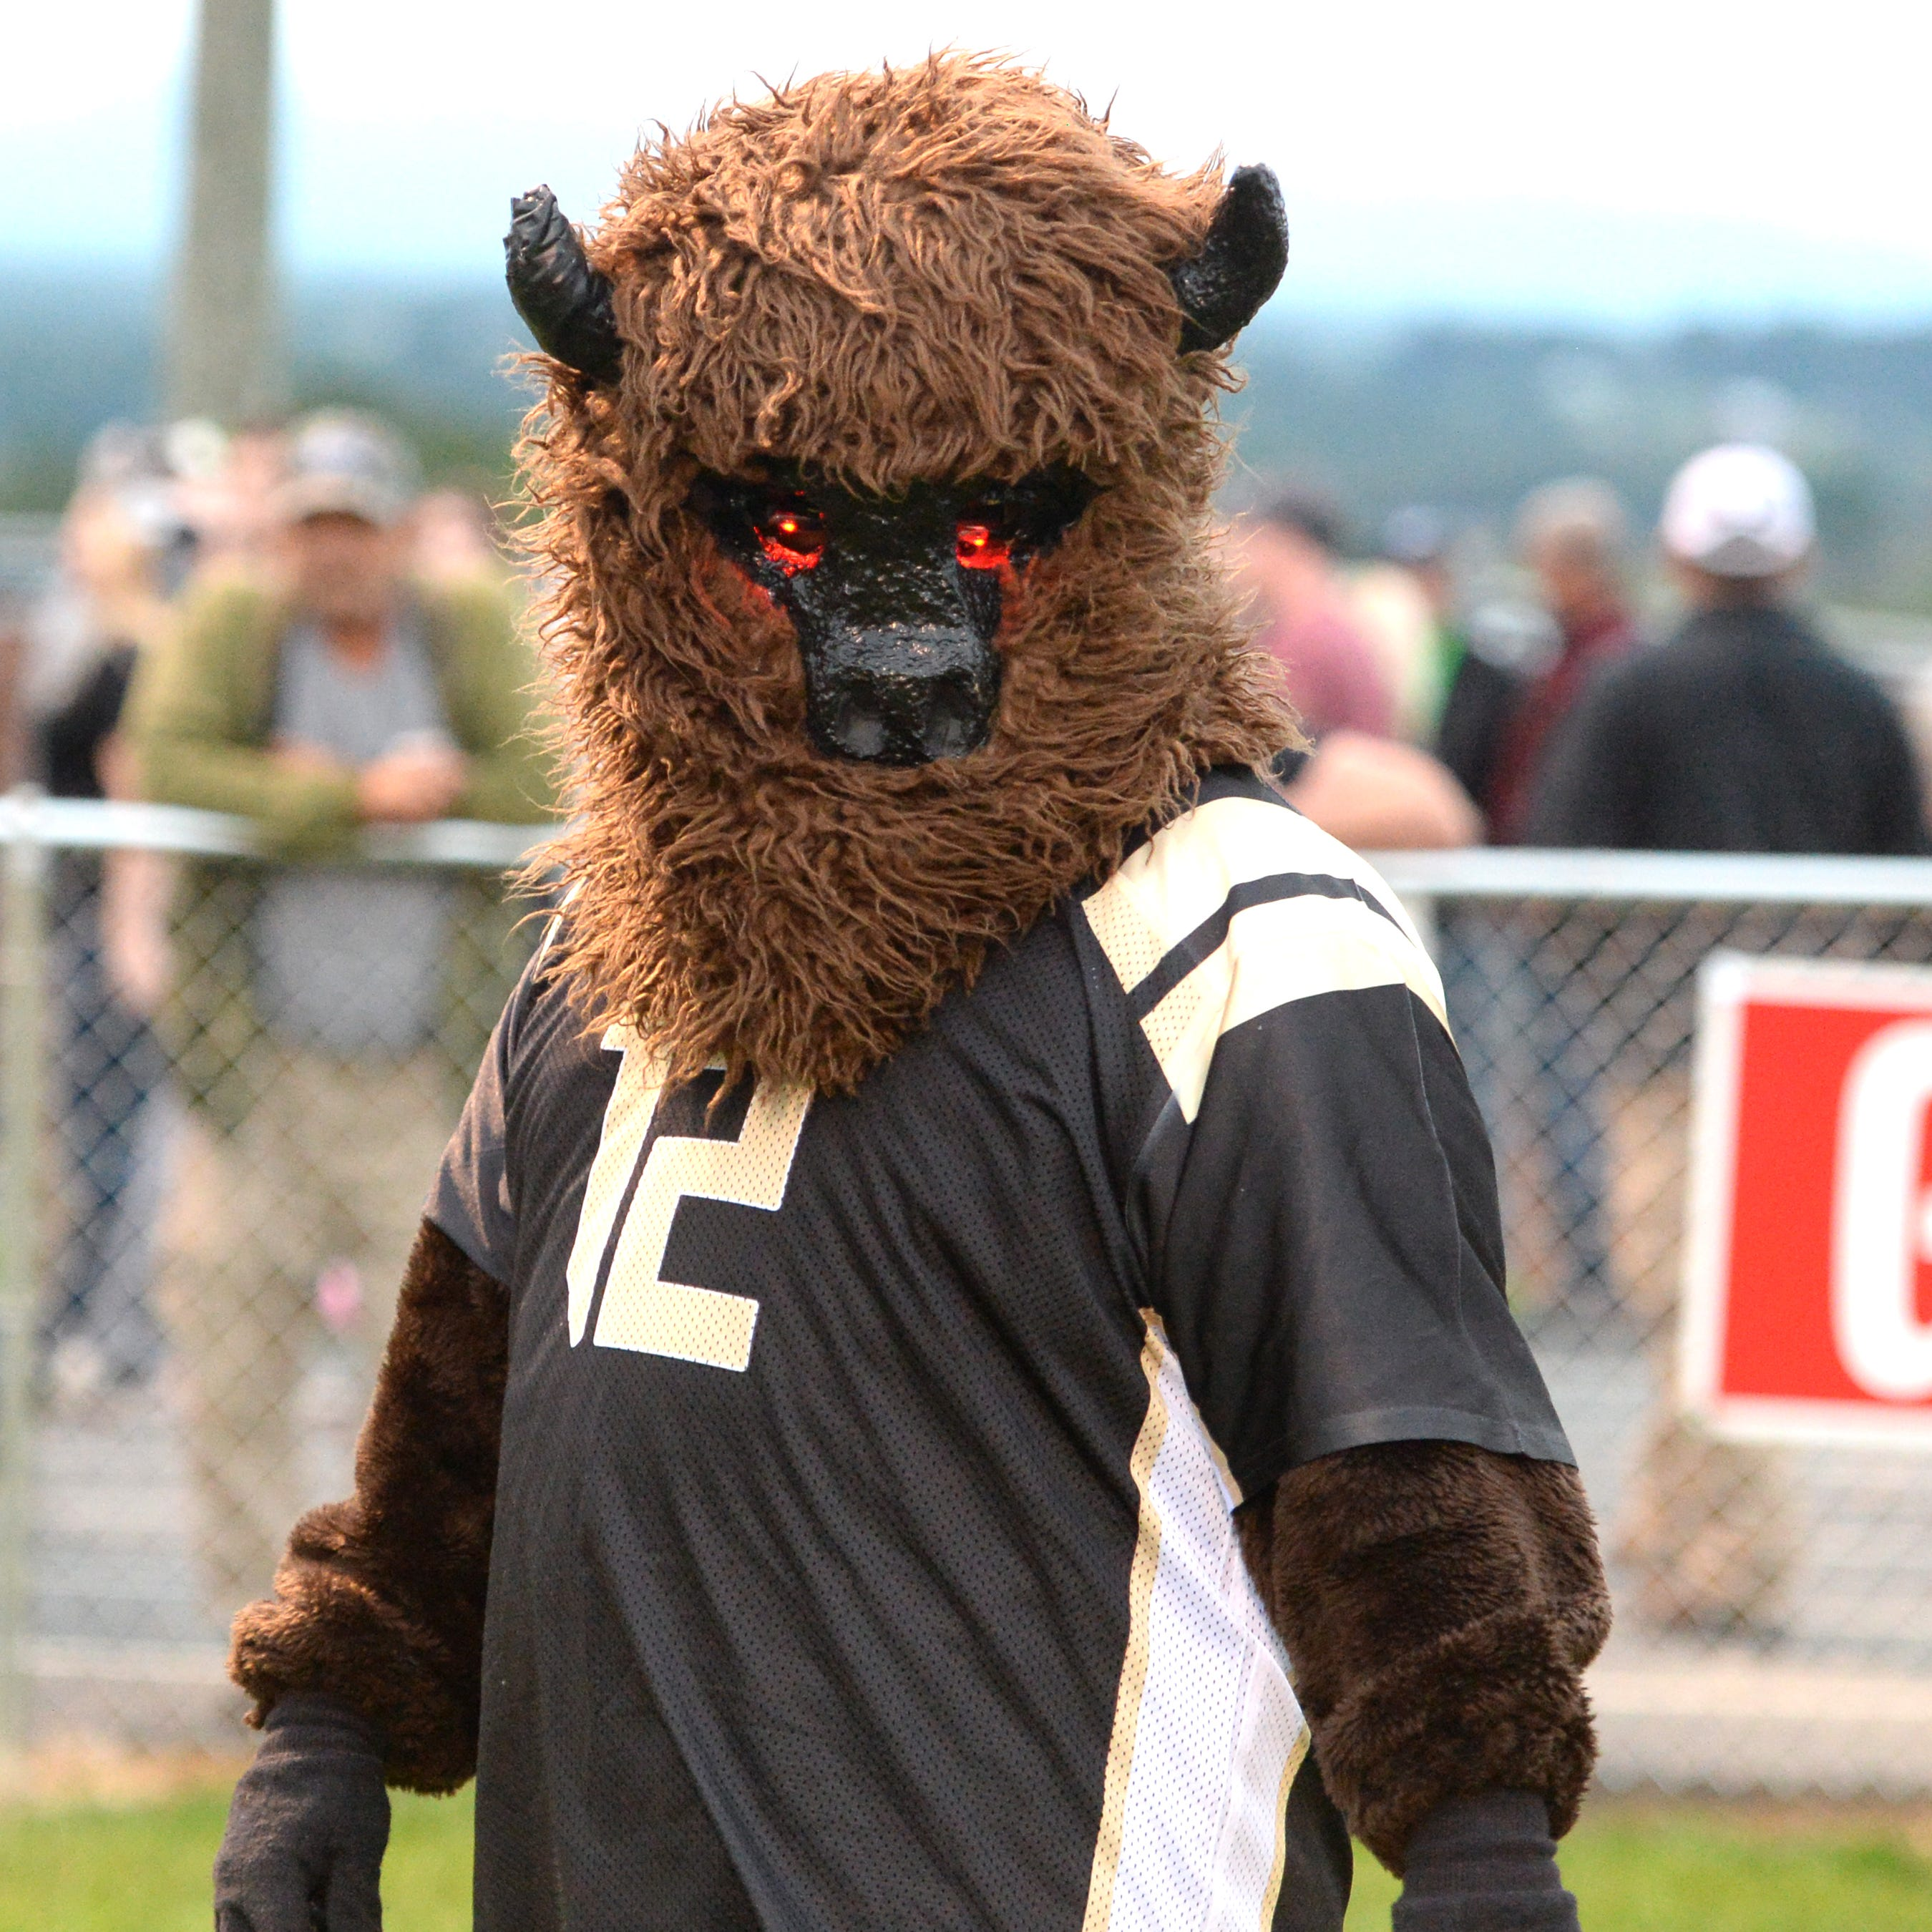 The Bison mascot is ready for the game between Buffalo Gap and Riverheads Saturday.